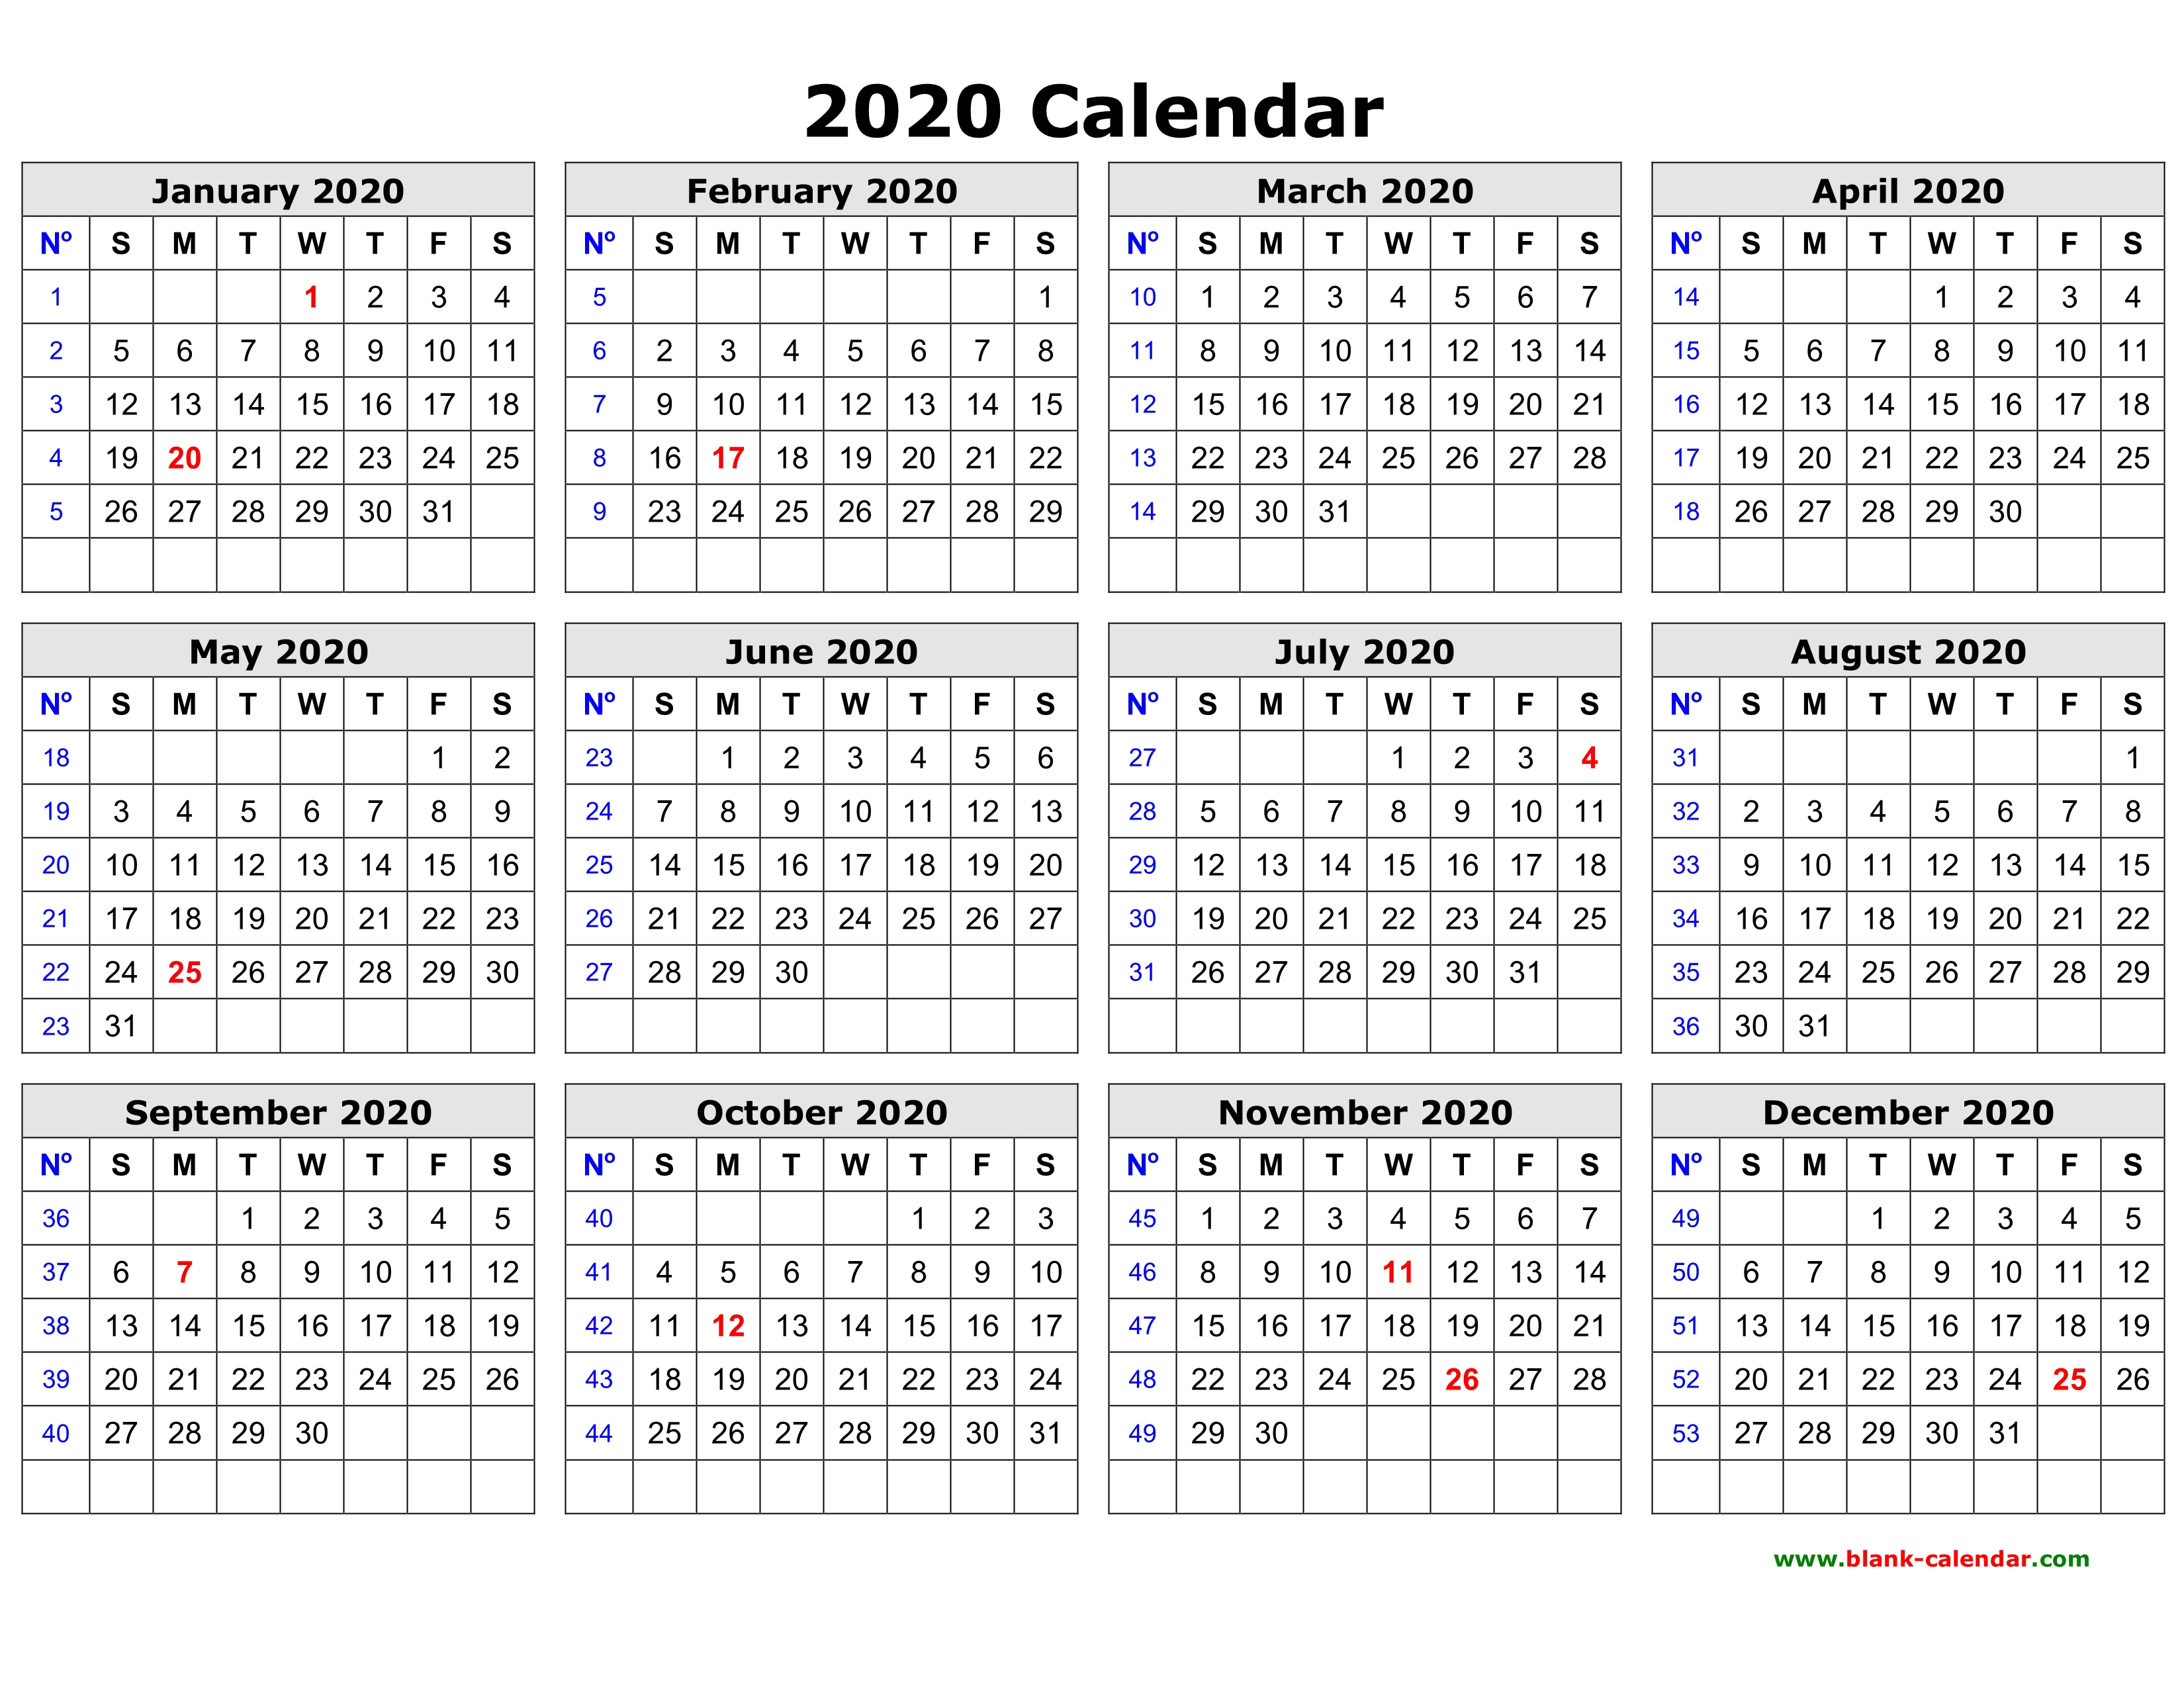 Printable 2020 Calendar On One Page  Bolan.horizonconsulting.co with Large Grid Calendar Printable